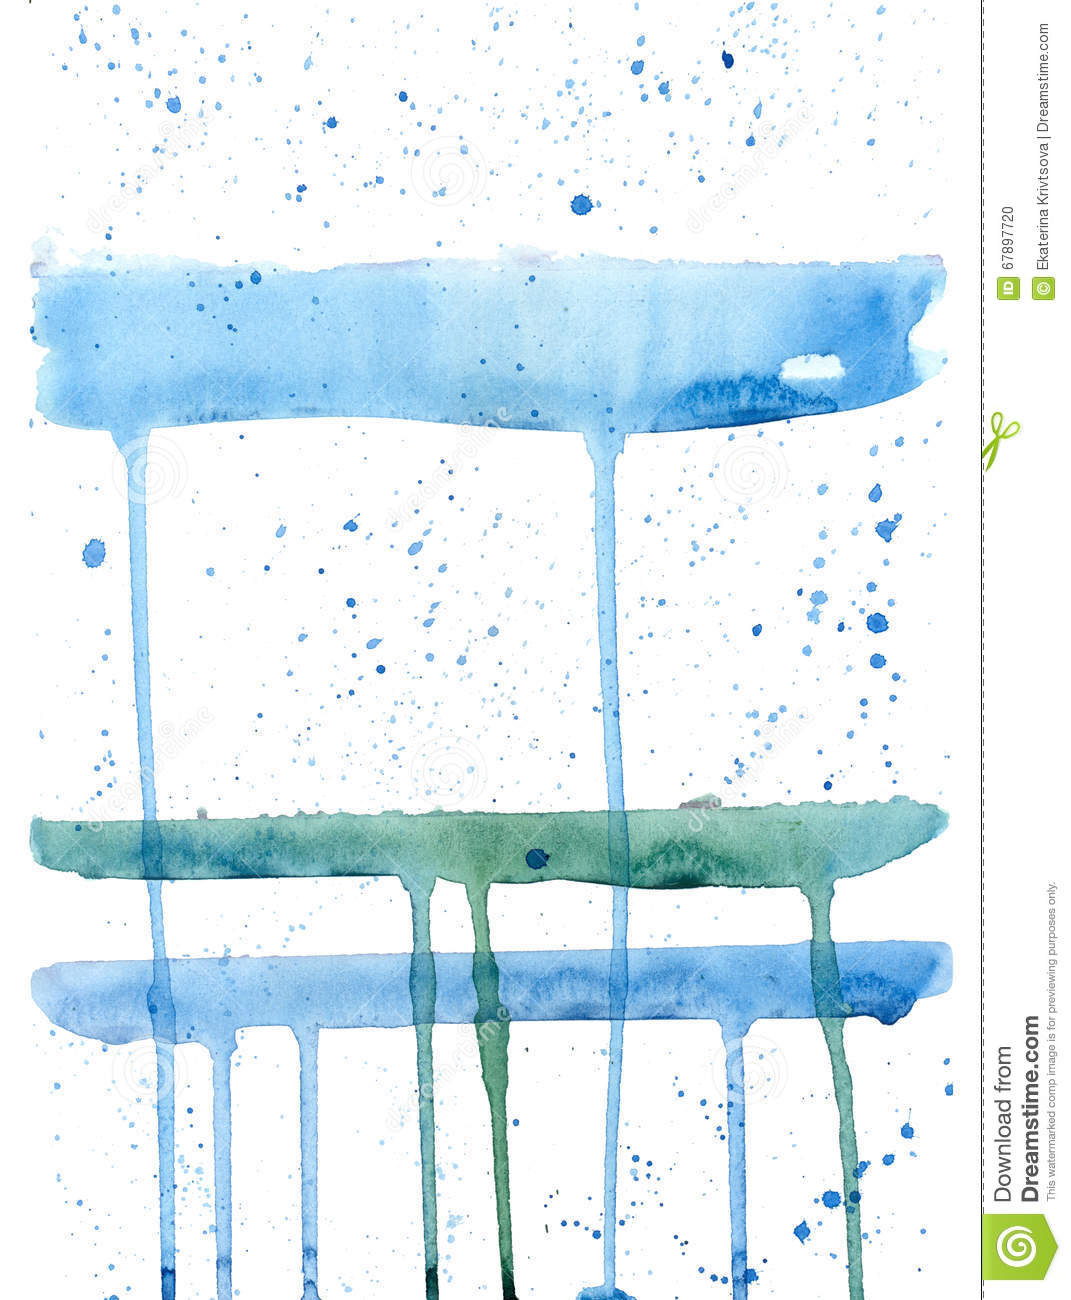 Watercolor blue-white background.